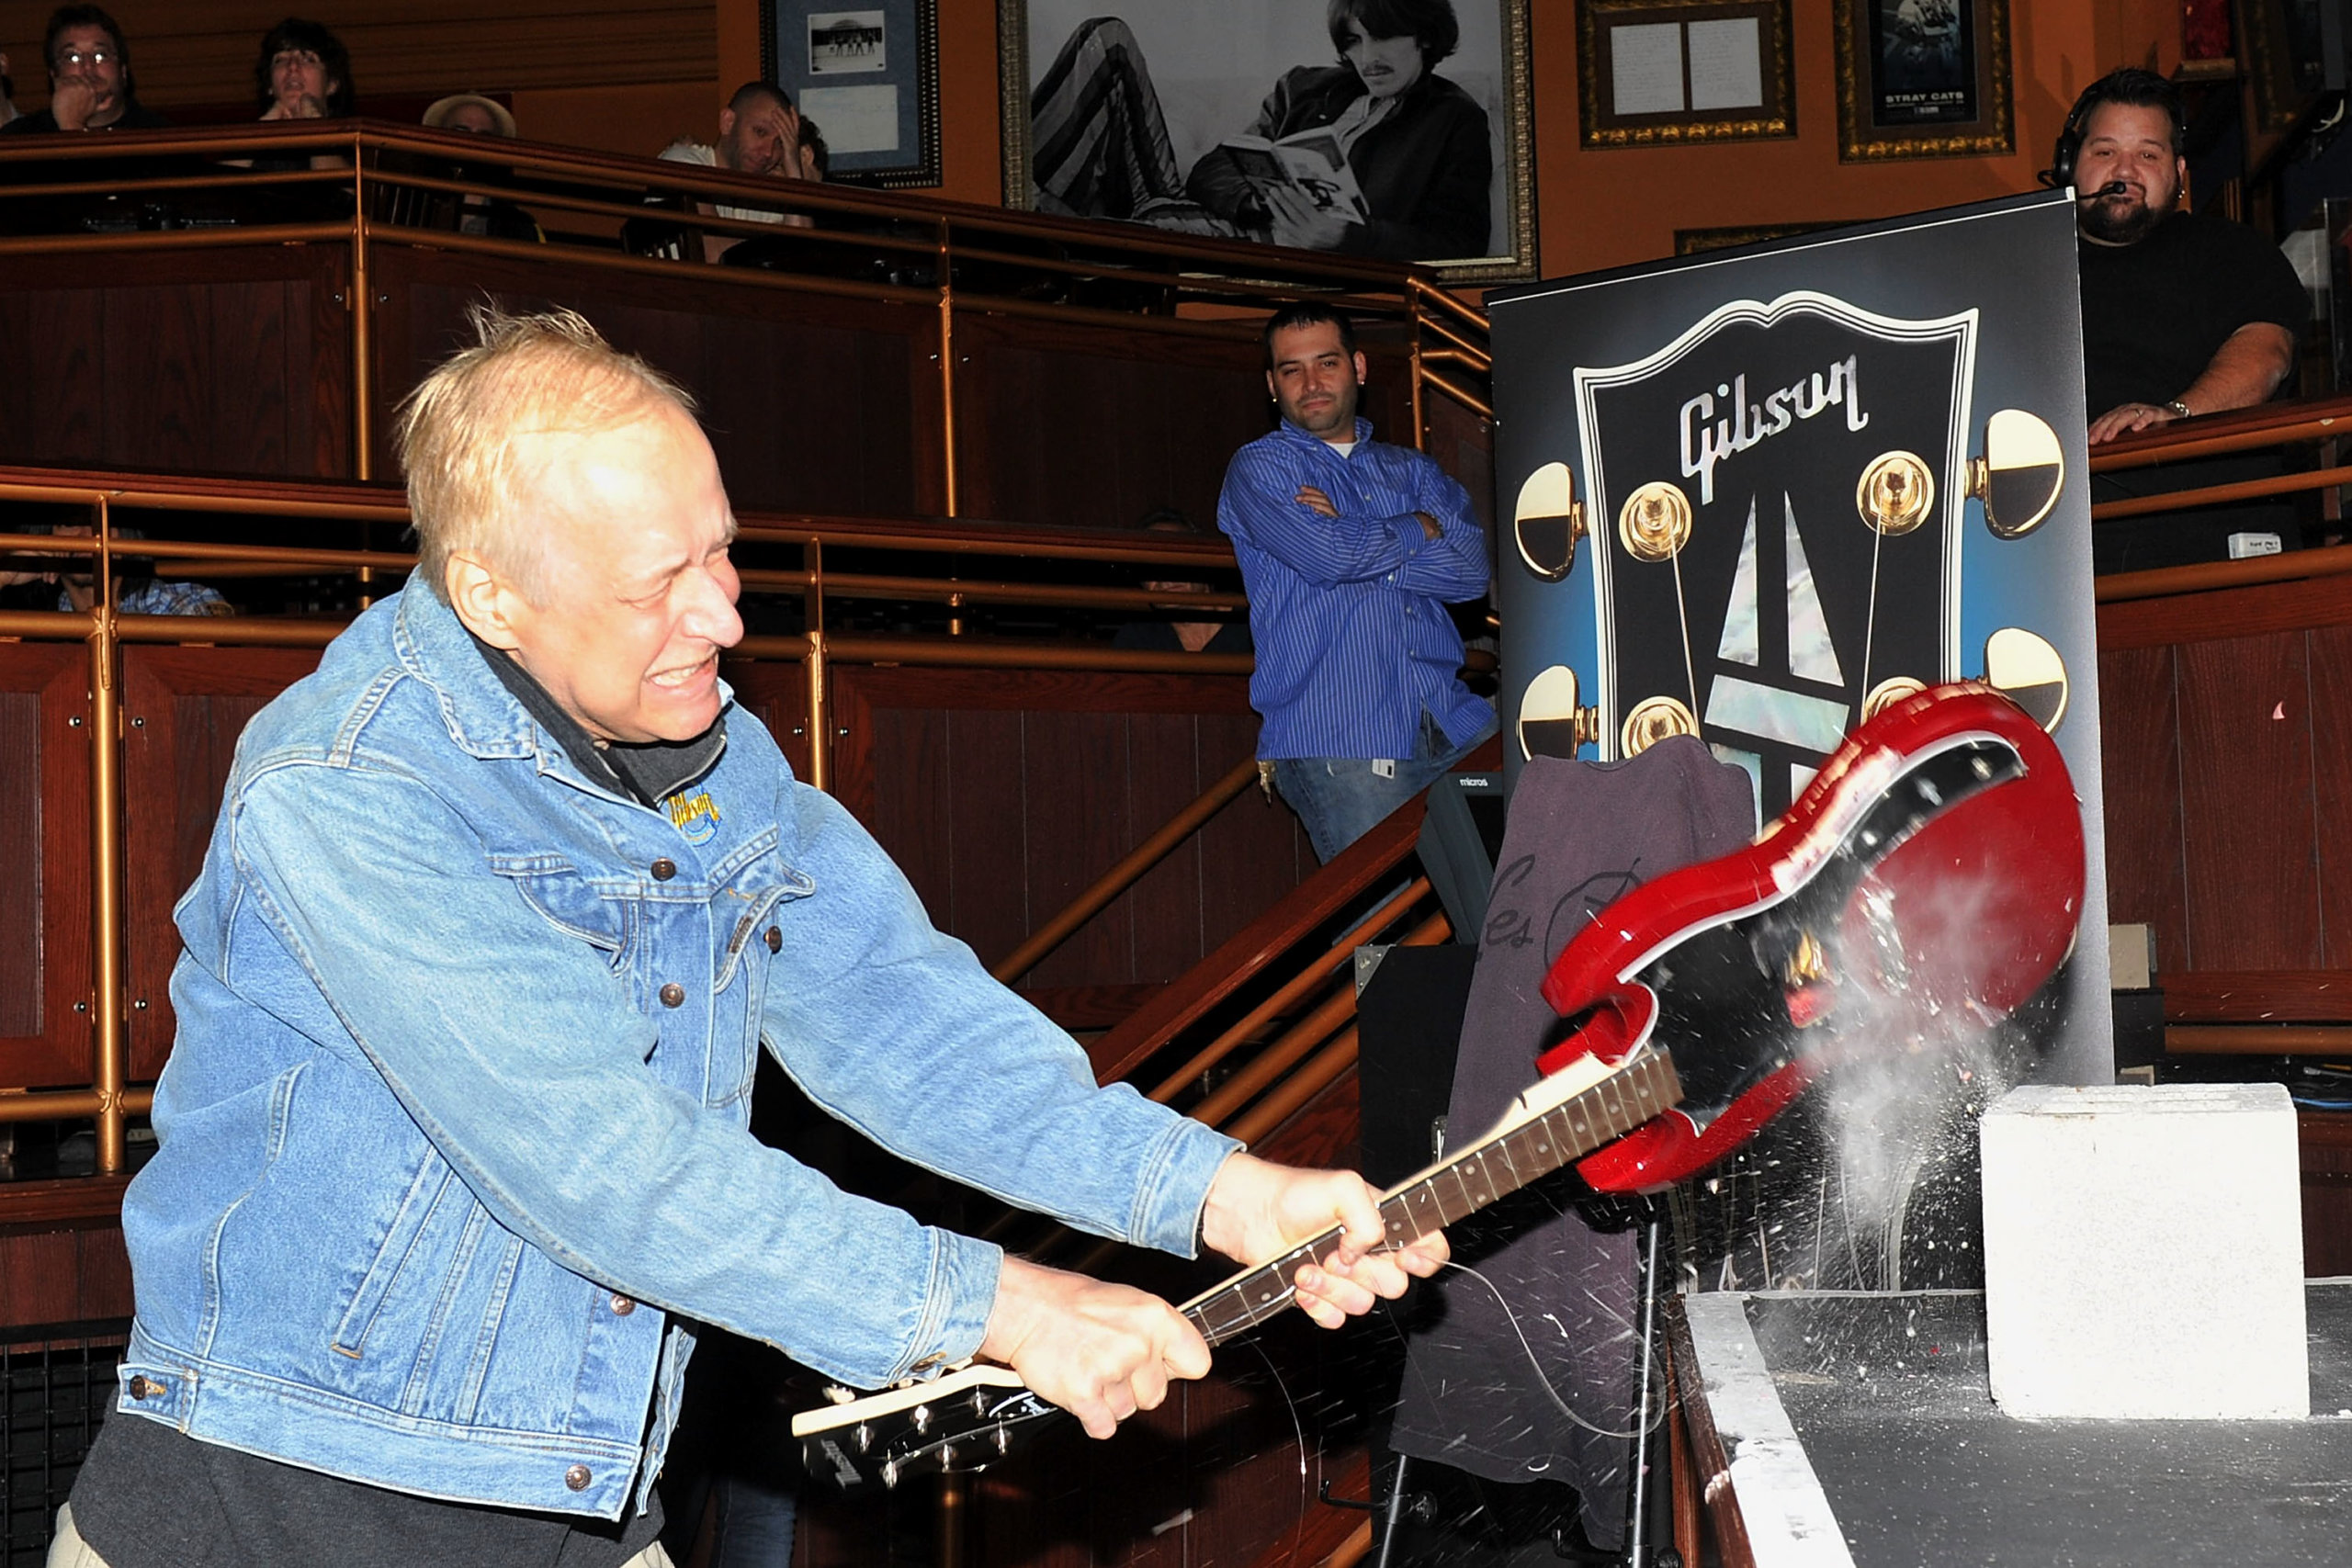 Gibson launches search for new CEO to replace Henry Juszkiewicz